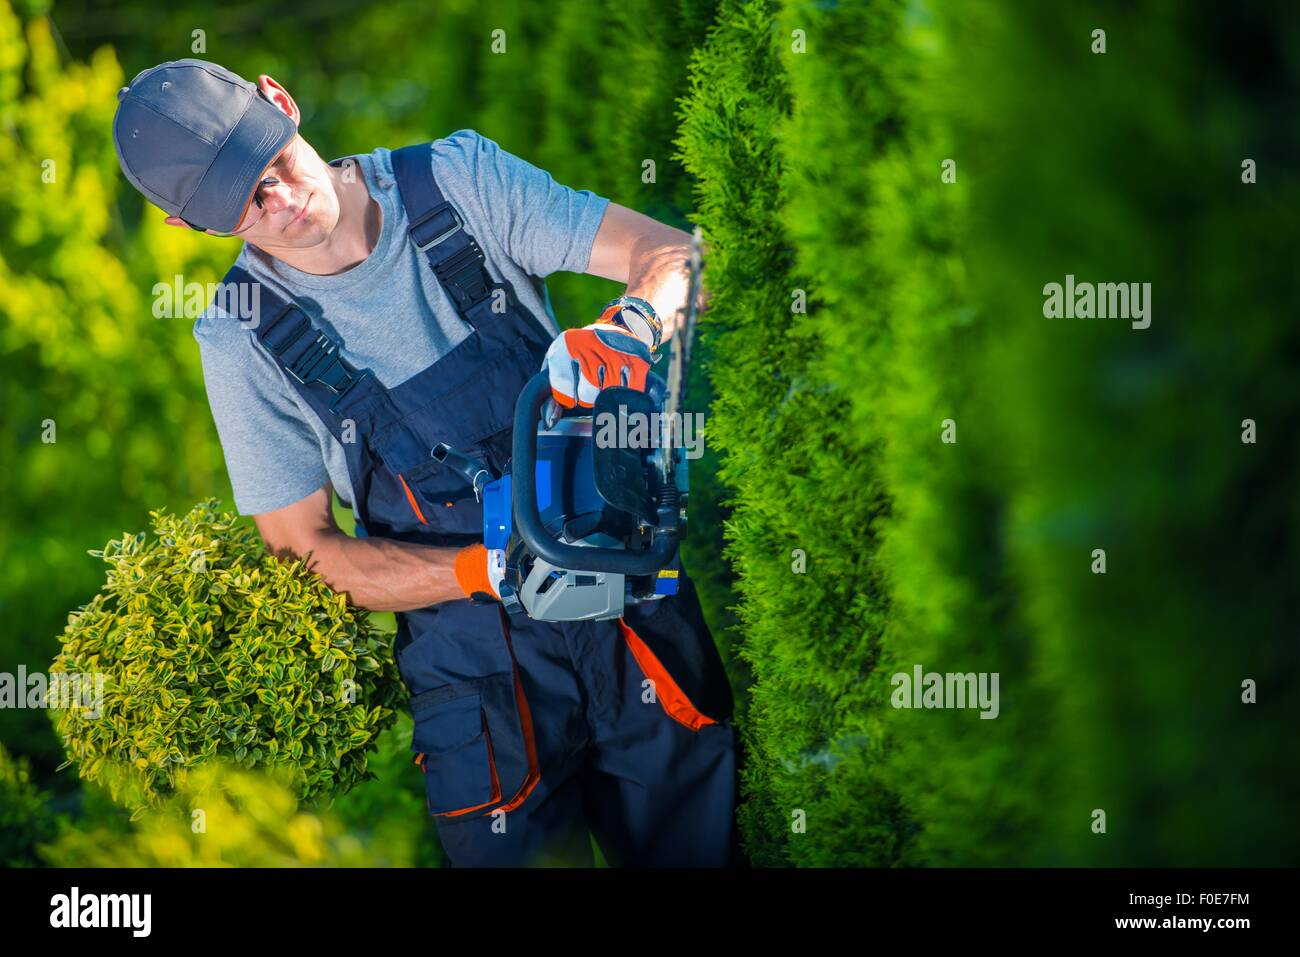 Hedge Trimmer Works. Gardener with Gasoline Hedge Trimmer Shaping Wall of Thujas. - Stock Image